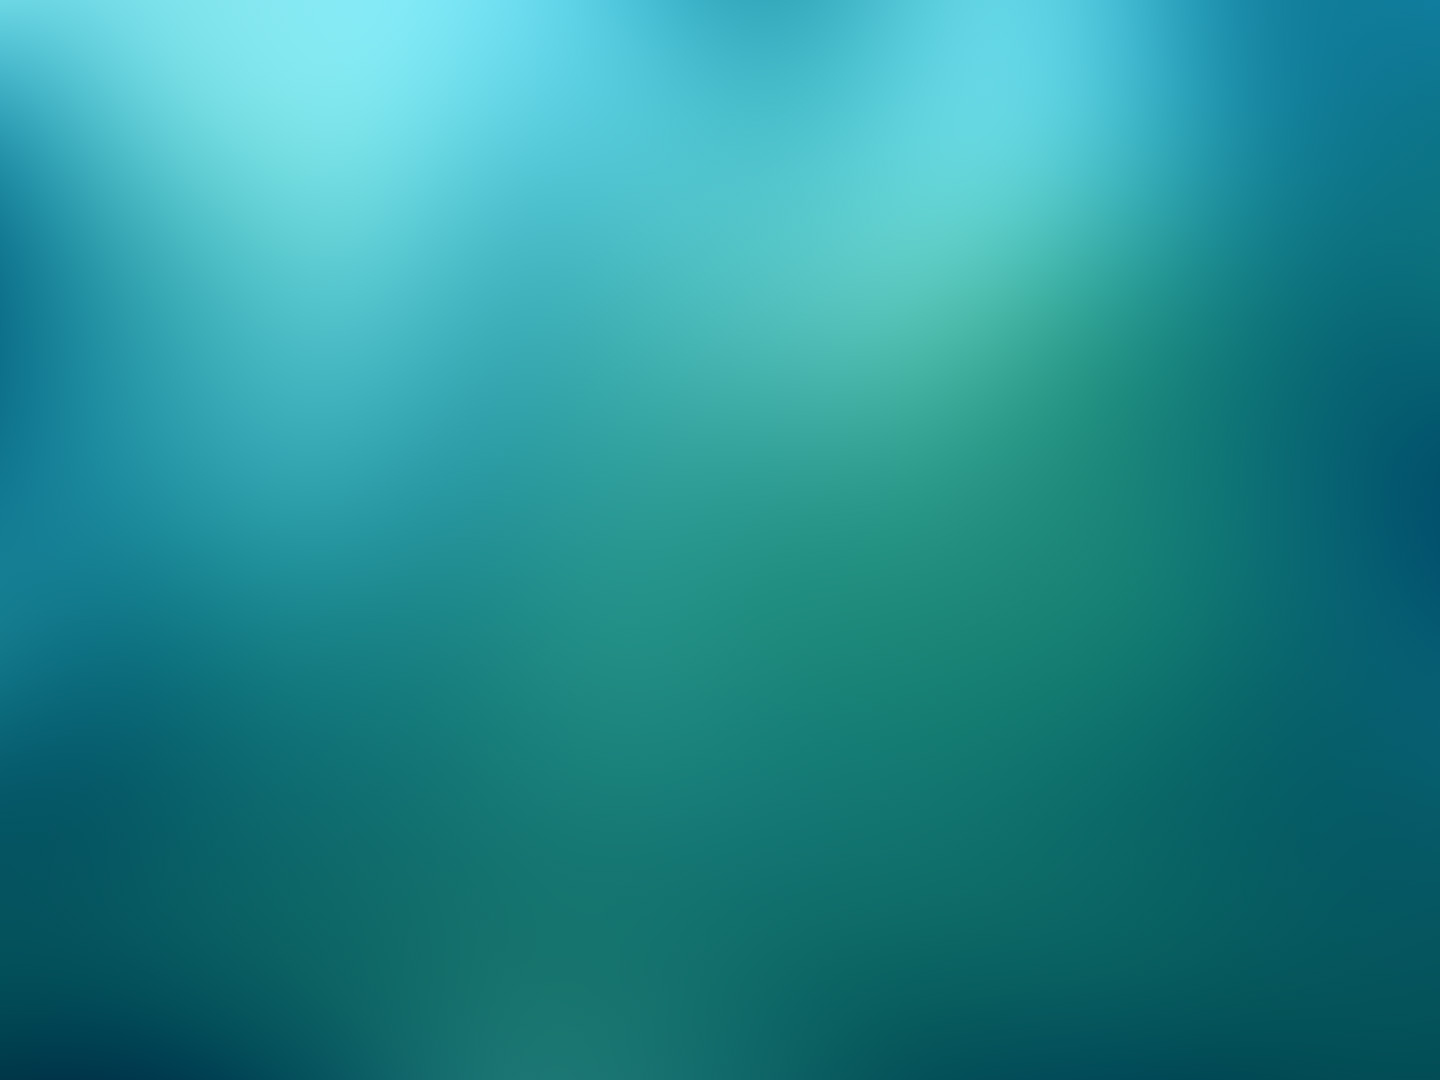 Blue And Green Wallpaper Background